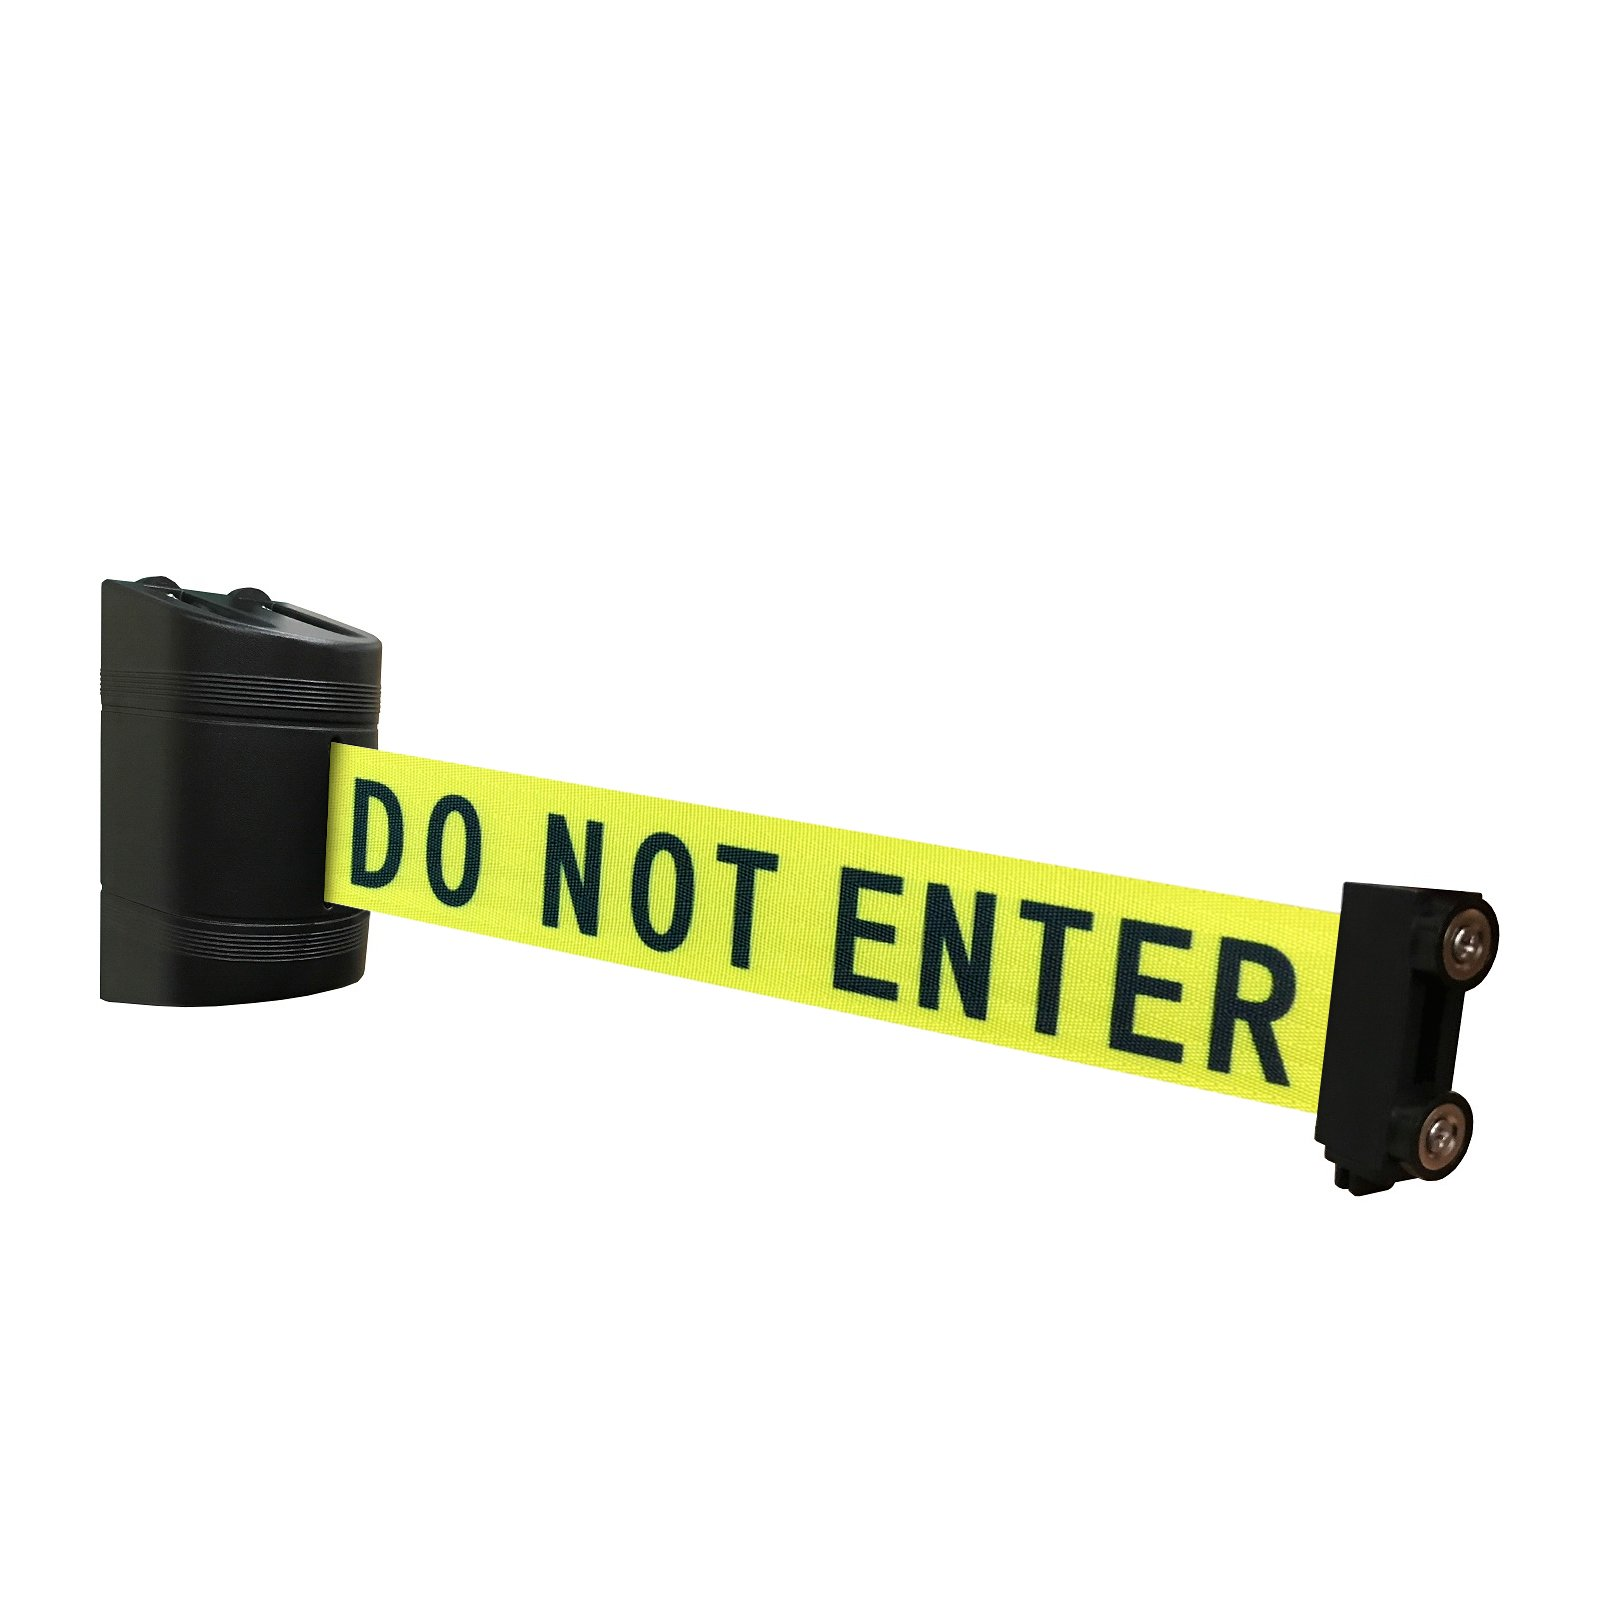 Magnetic Retractable Wall Barrier 120''L (Caution DO NOT Enter) by Crowd Control Center